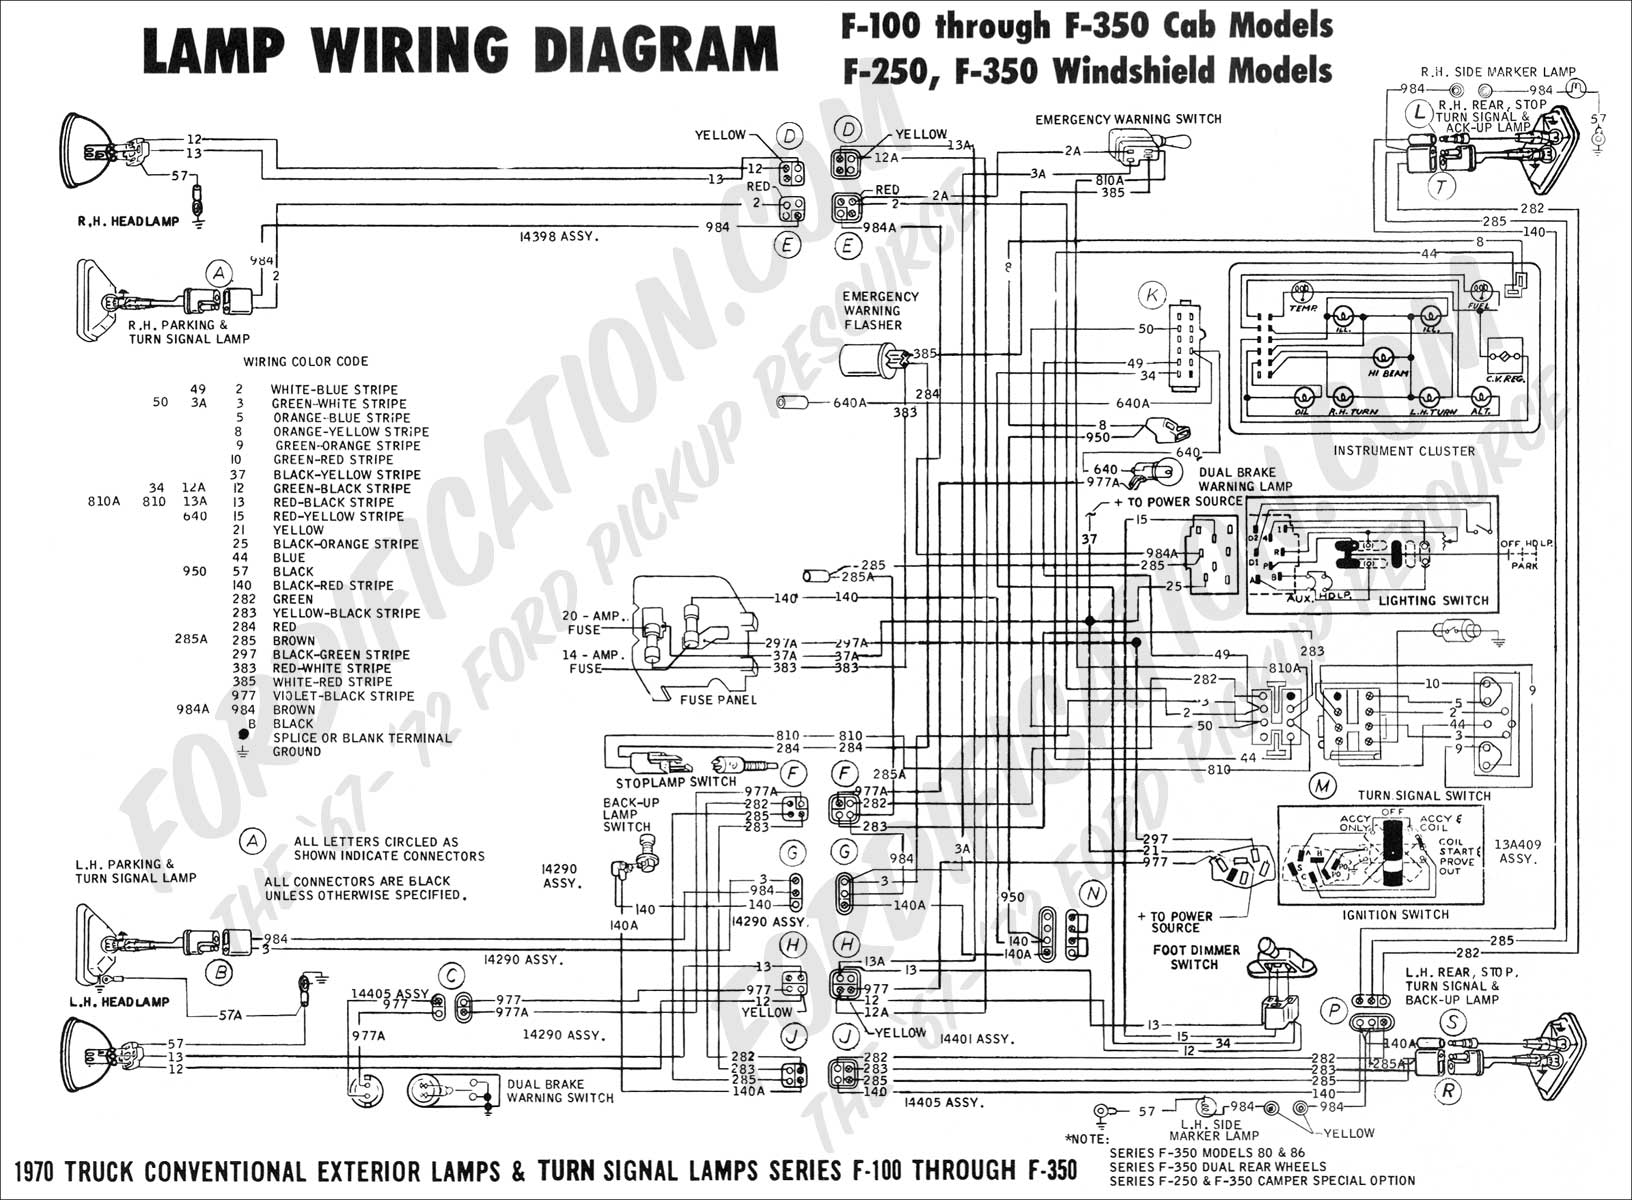 wiring diagram_70ext lights01 ford f250 wiring diagram online f250 trailer wiring diagram wiring diagram for 2002 f250 starter at honlapkeszites.co